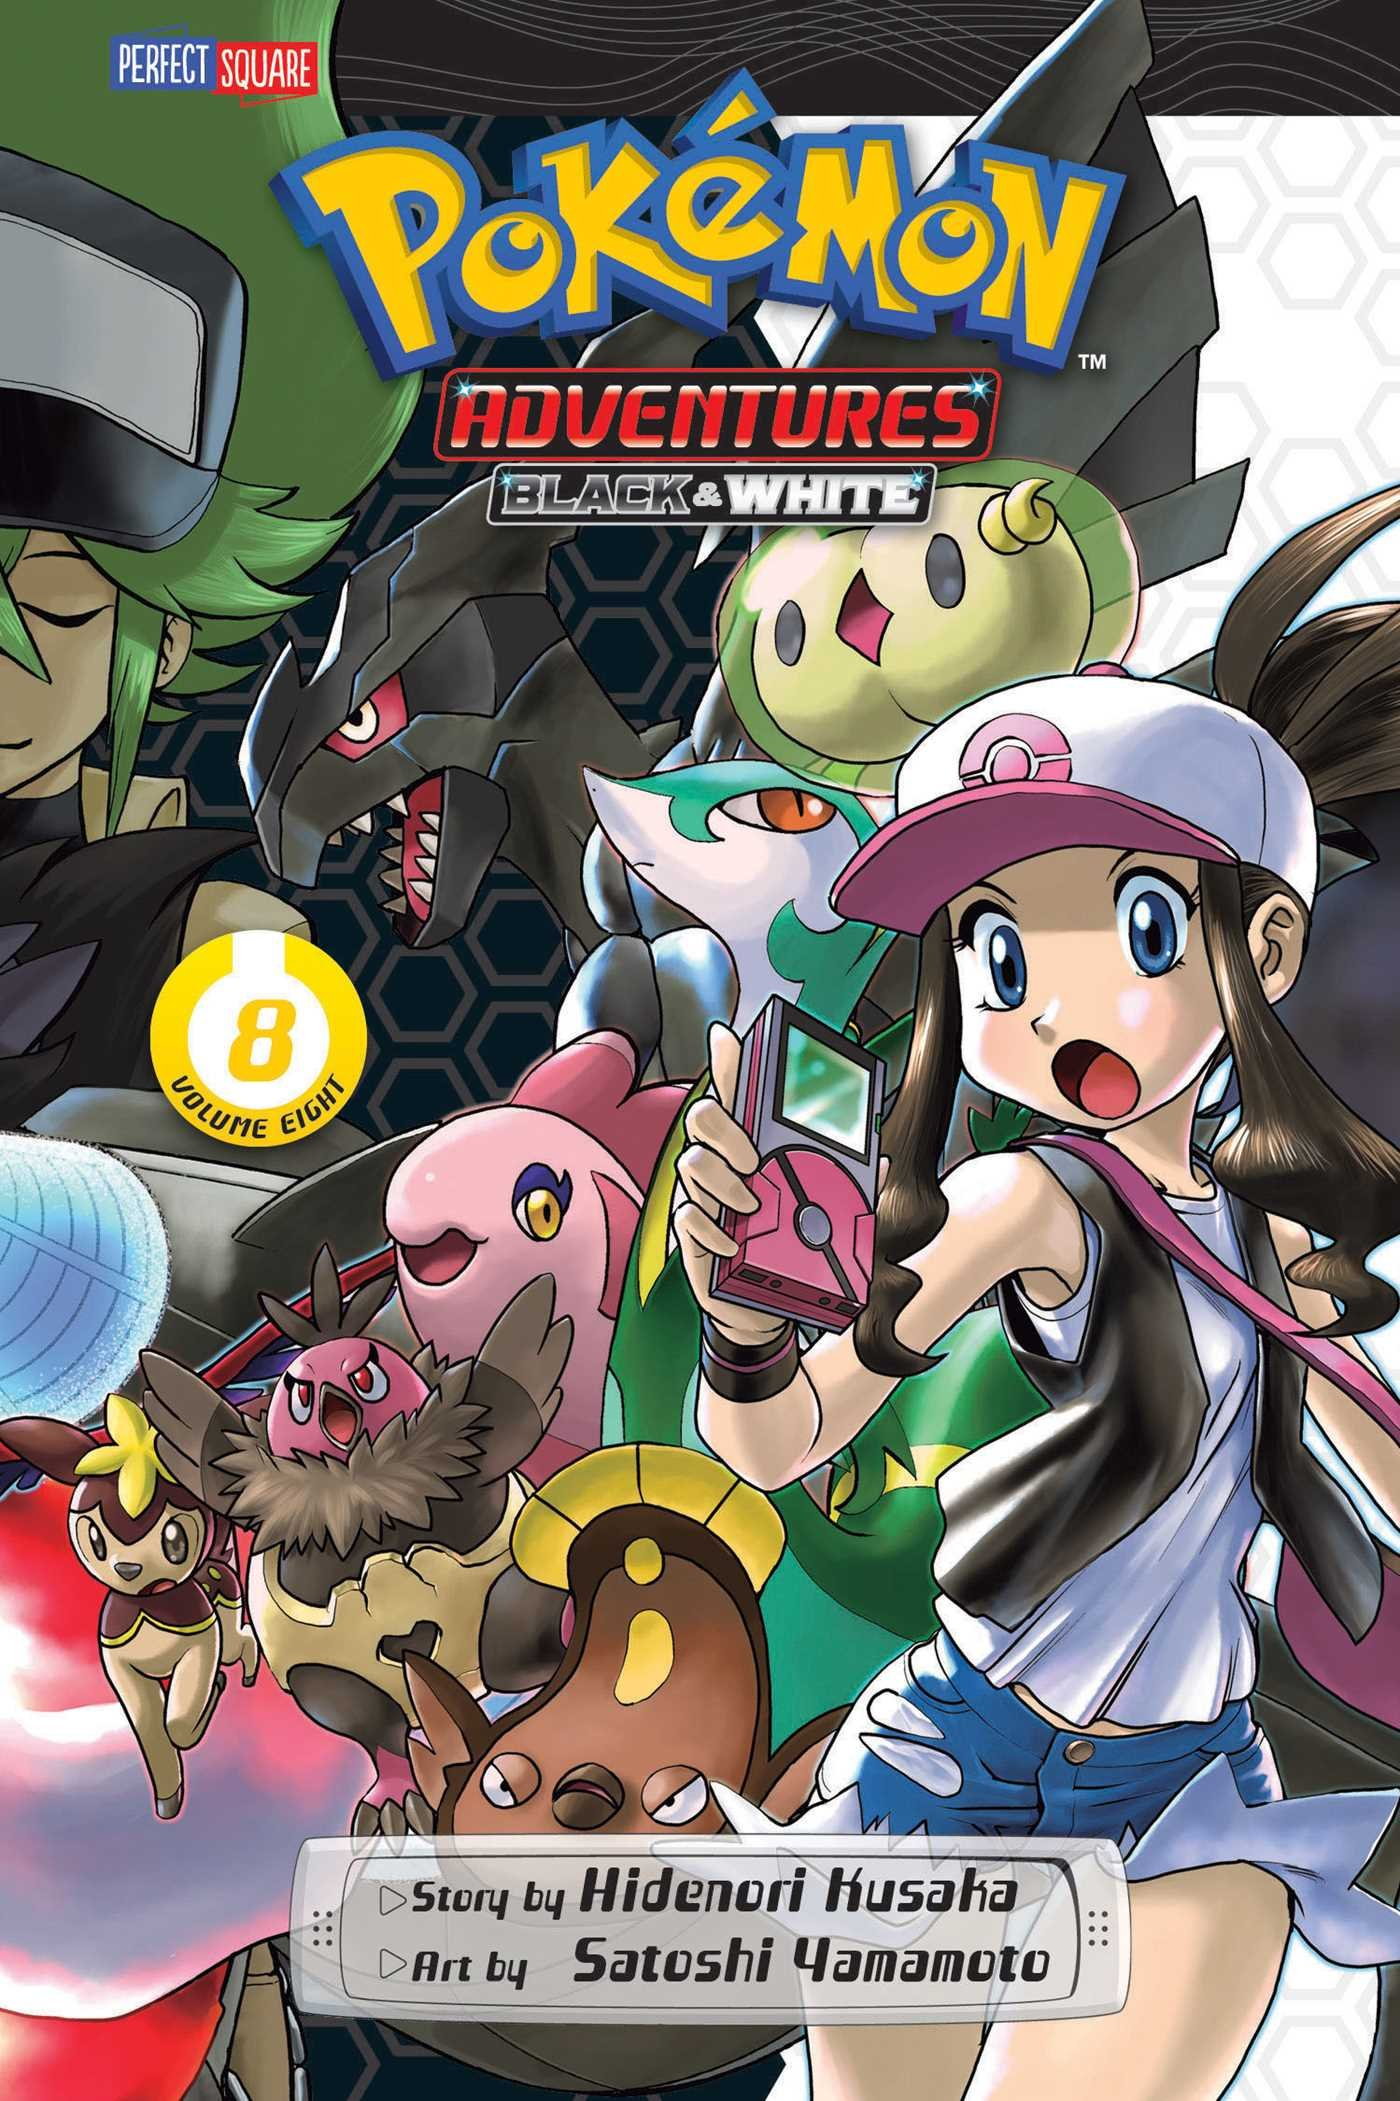 Pok%C3%A9mon Adventures Black White Pokemon product image